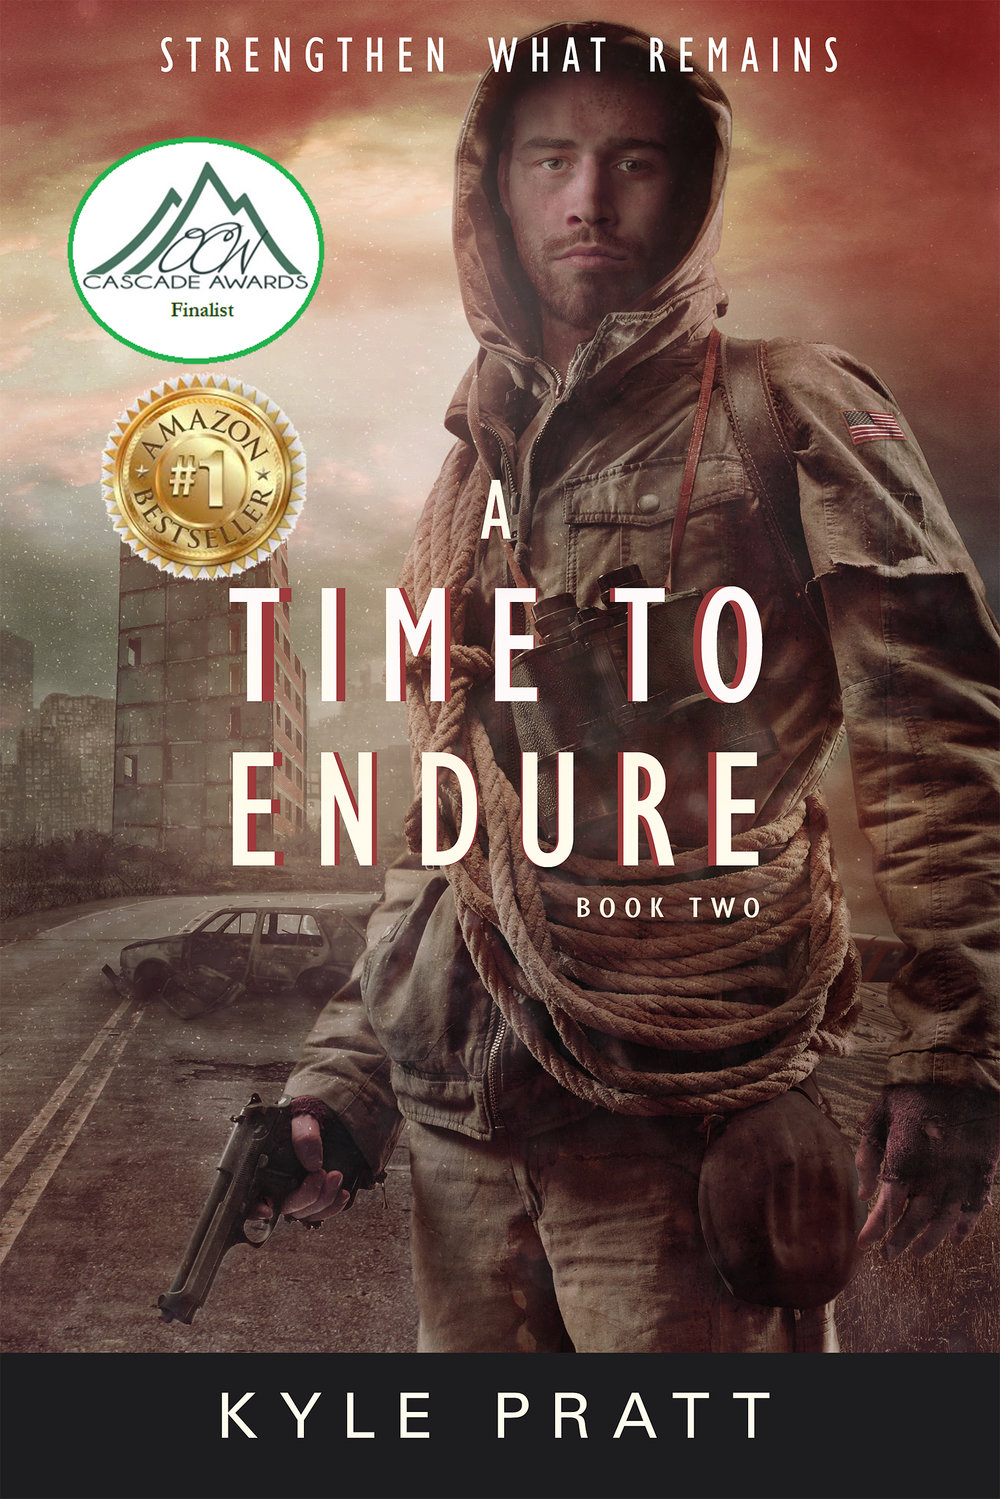 A Time to Endure    The second novel in the Strengthen What Remains series.   The nation's economy teeters on the verge of collapse. The dollar plunges, inflation runs rampant, and the next civil war threatens to decimate the wounded country. In the face of tyranny, panic, and growing hunger, Caden struggles to keep his family and town together. But how can he save his community when the nation is collapsing around it?